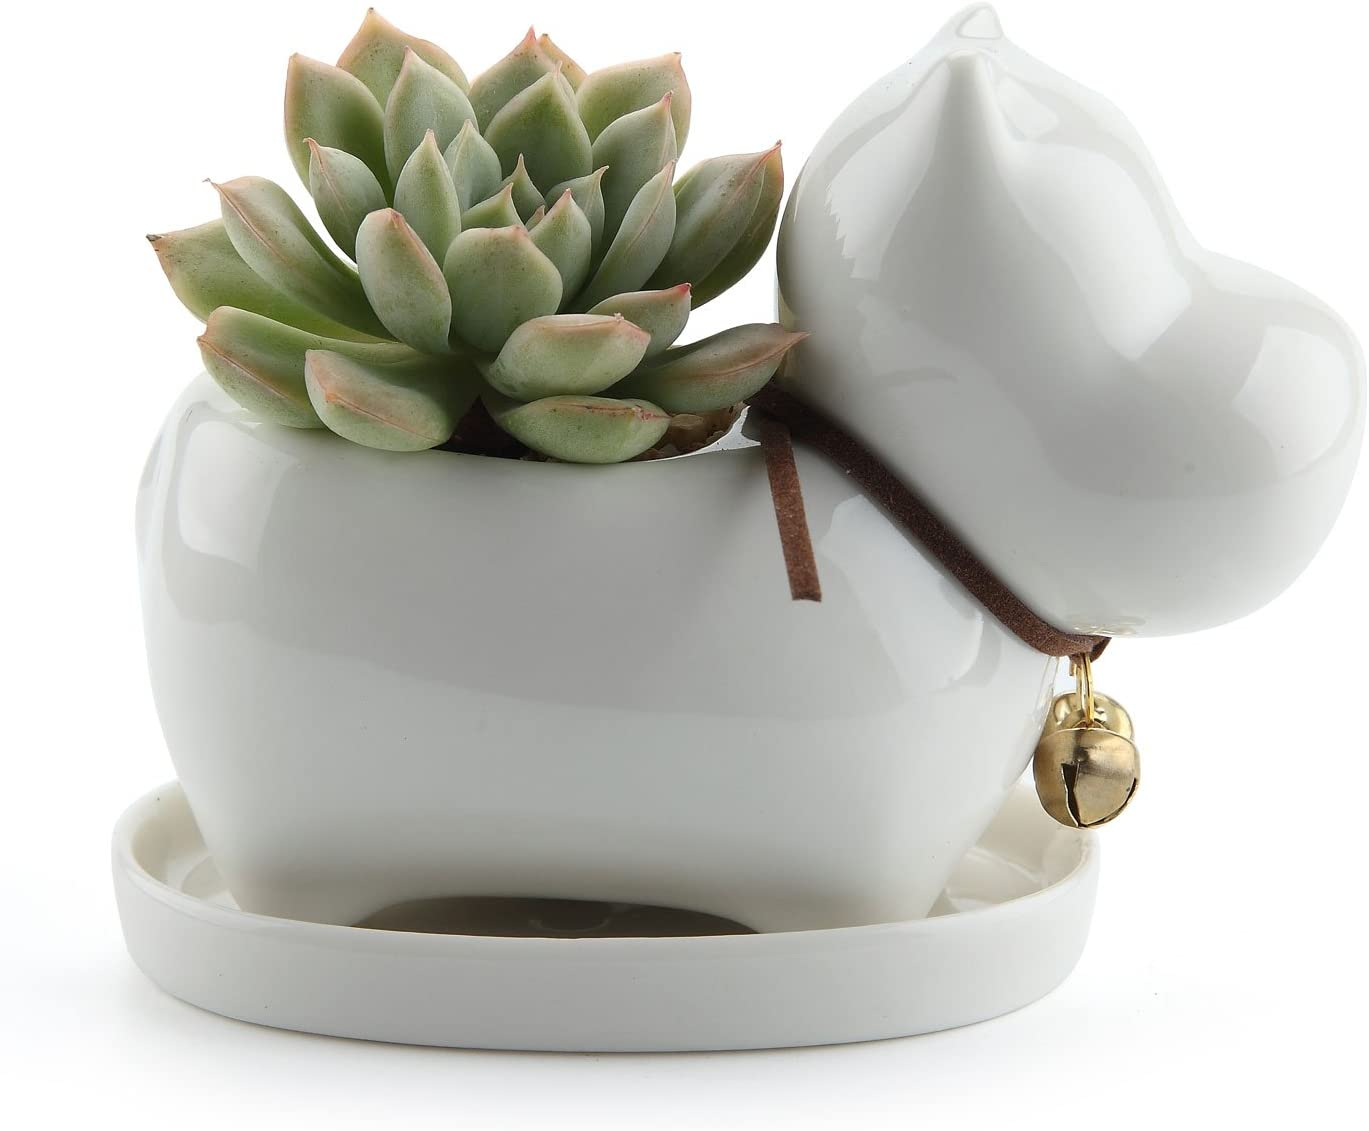 T4U Ceramic Succulent Pot White, Funny Hippo Design Cactus Flower Plant Planter Container Porcelain Holder Home Office Decoration with Golden Bell and Tray – Pack of 1